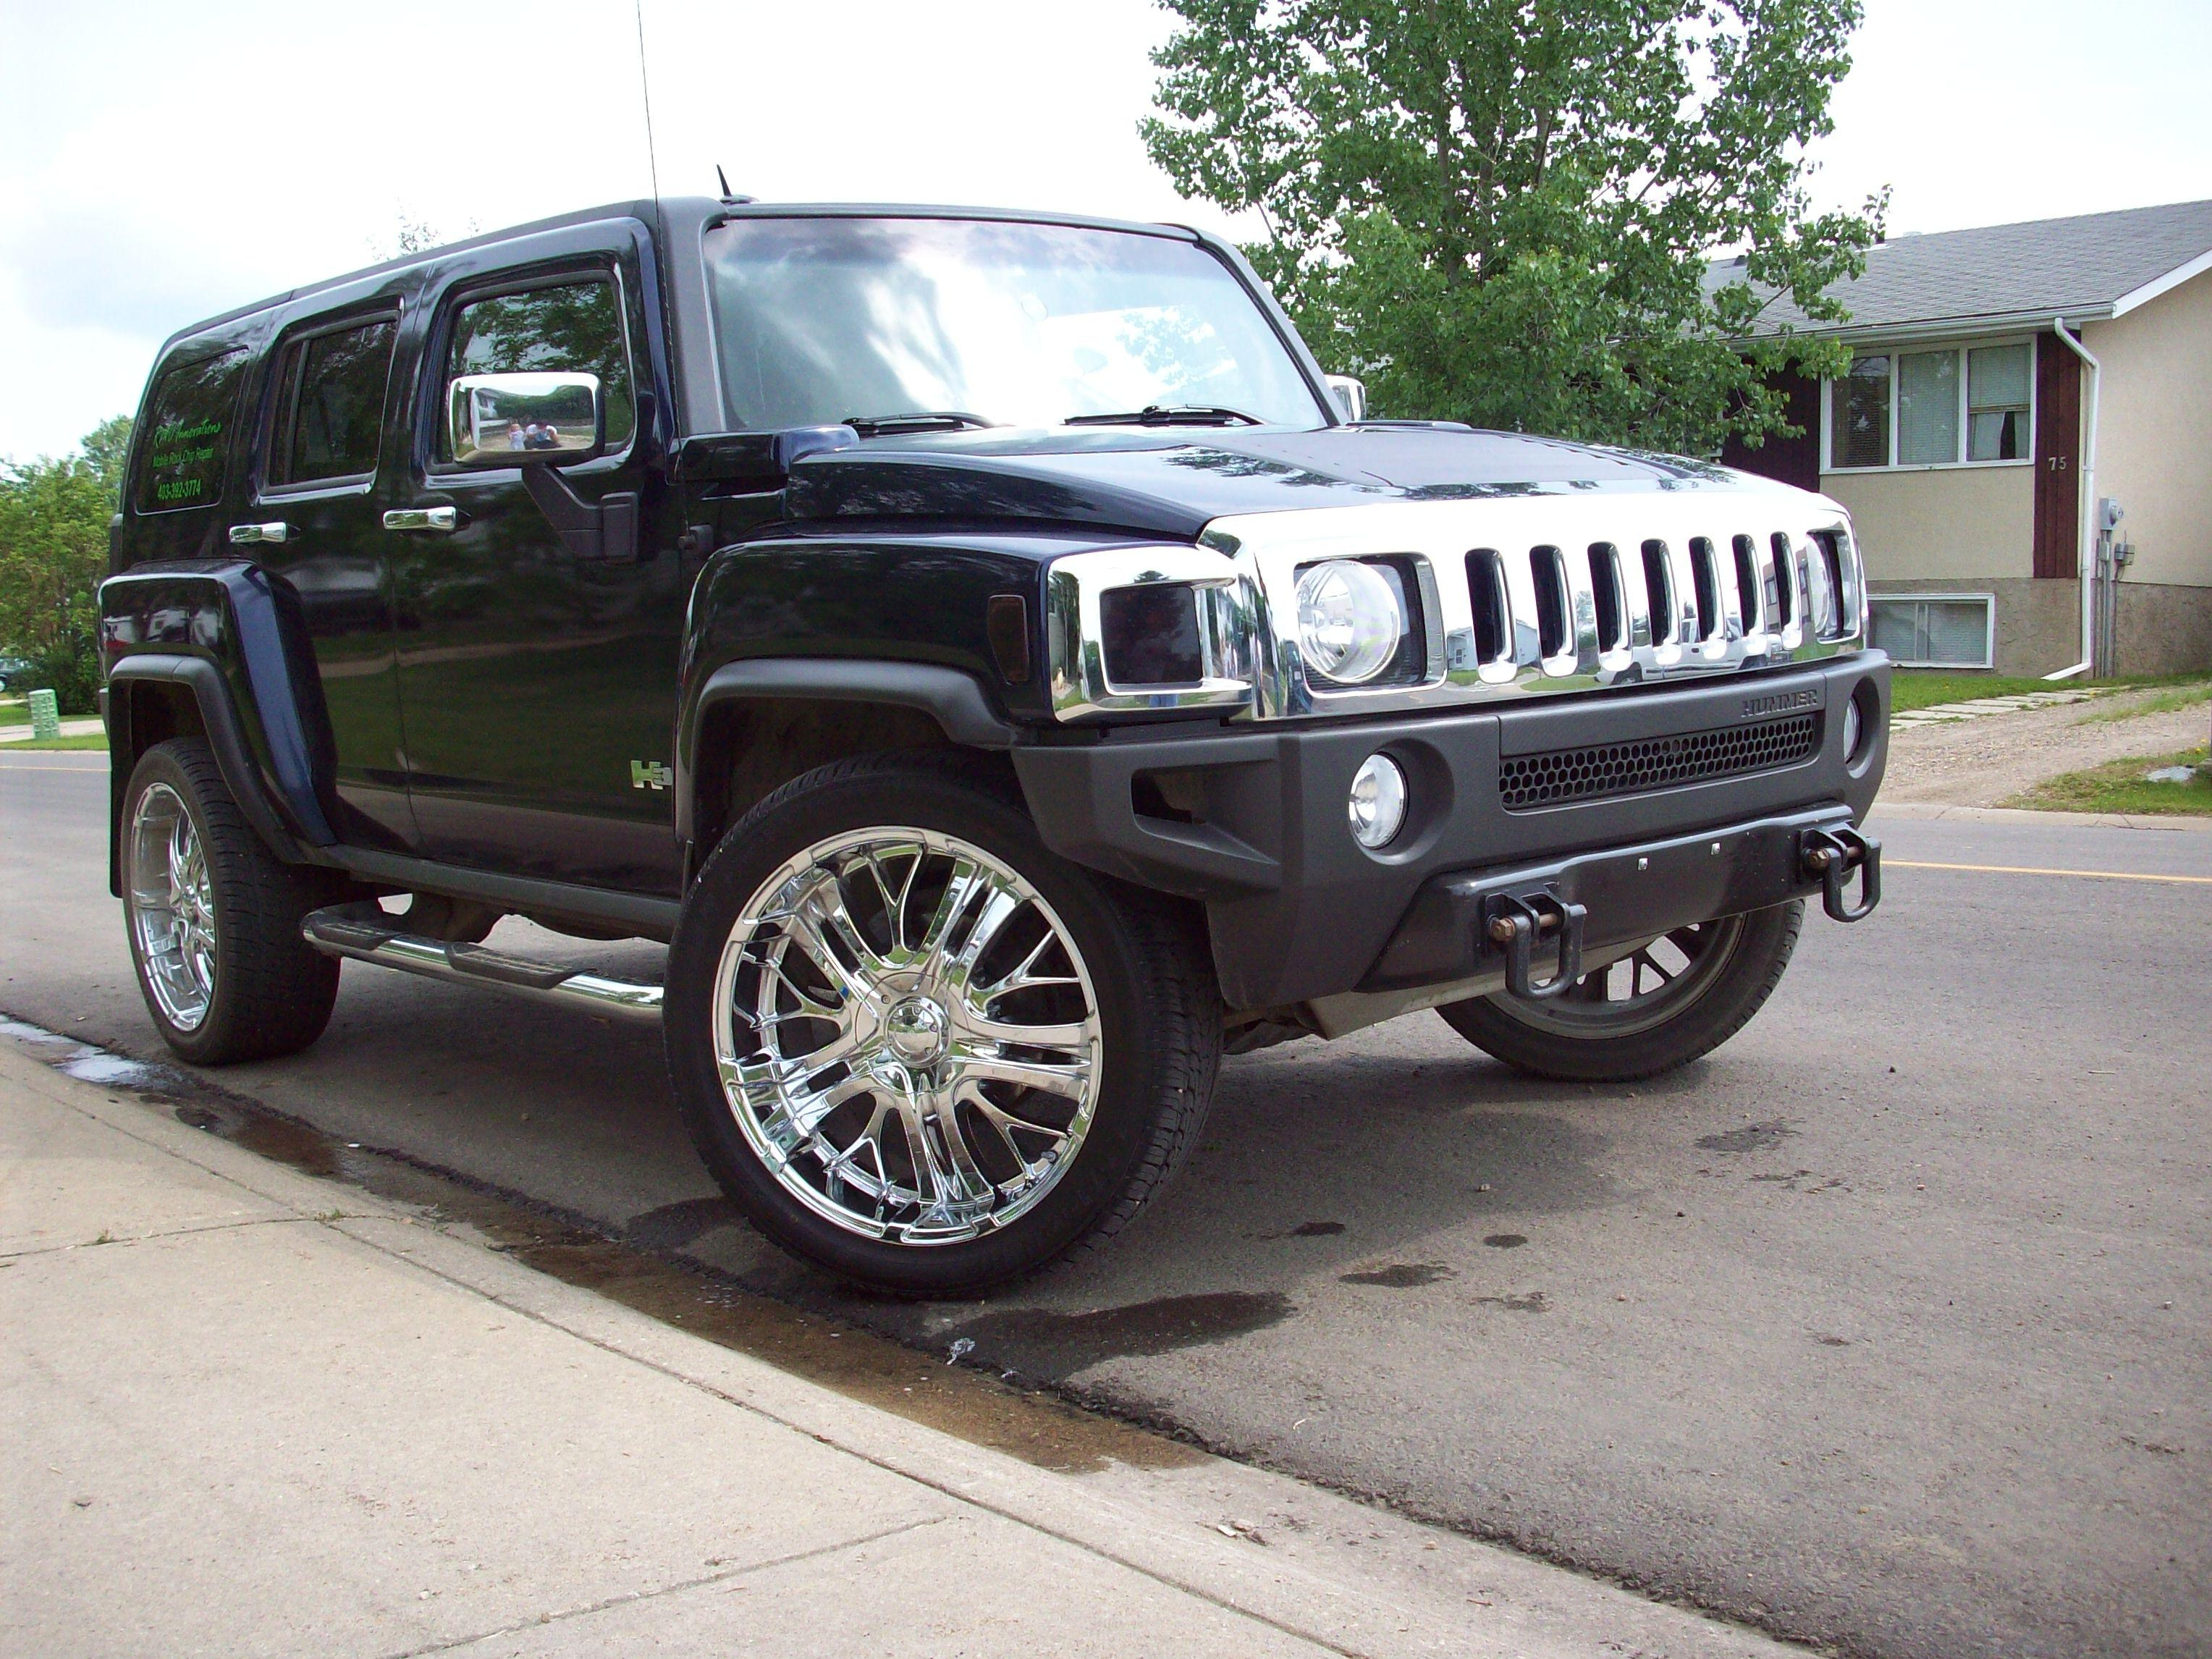 lowrida336 2007 Hummer H3Sport Utility 4D Specs s